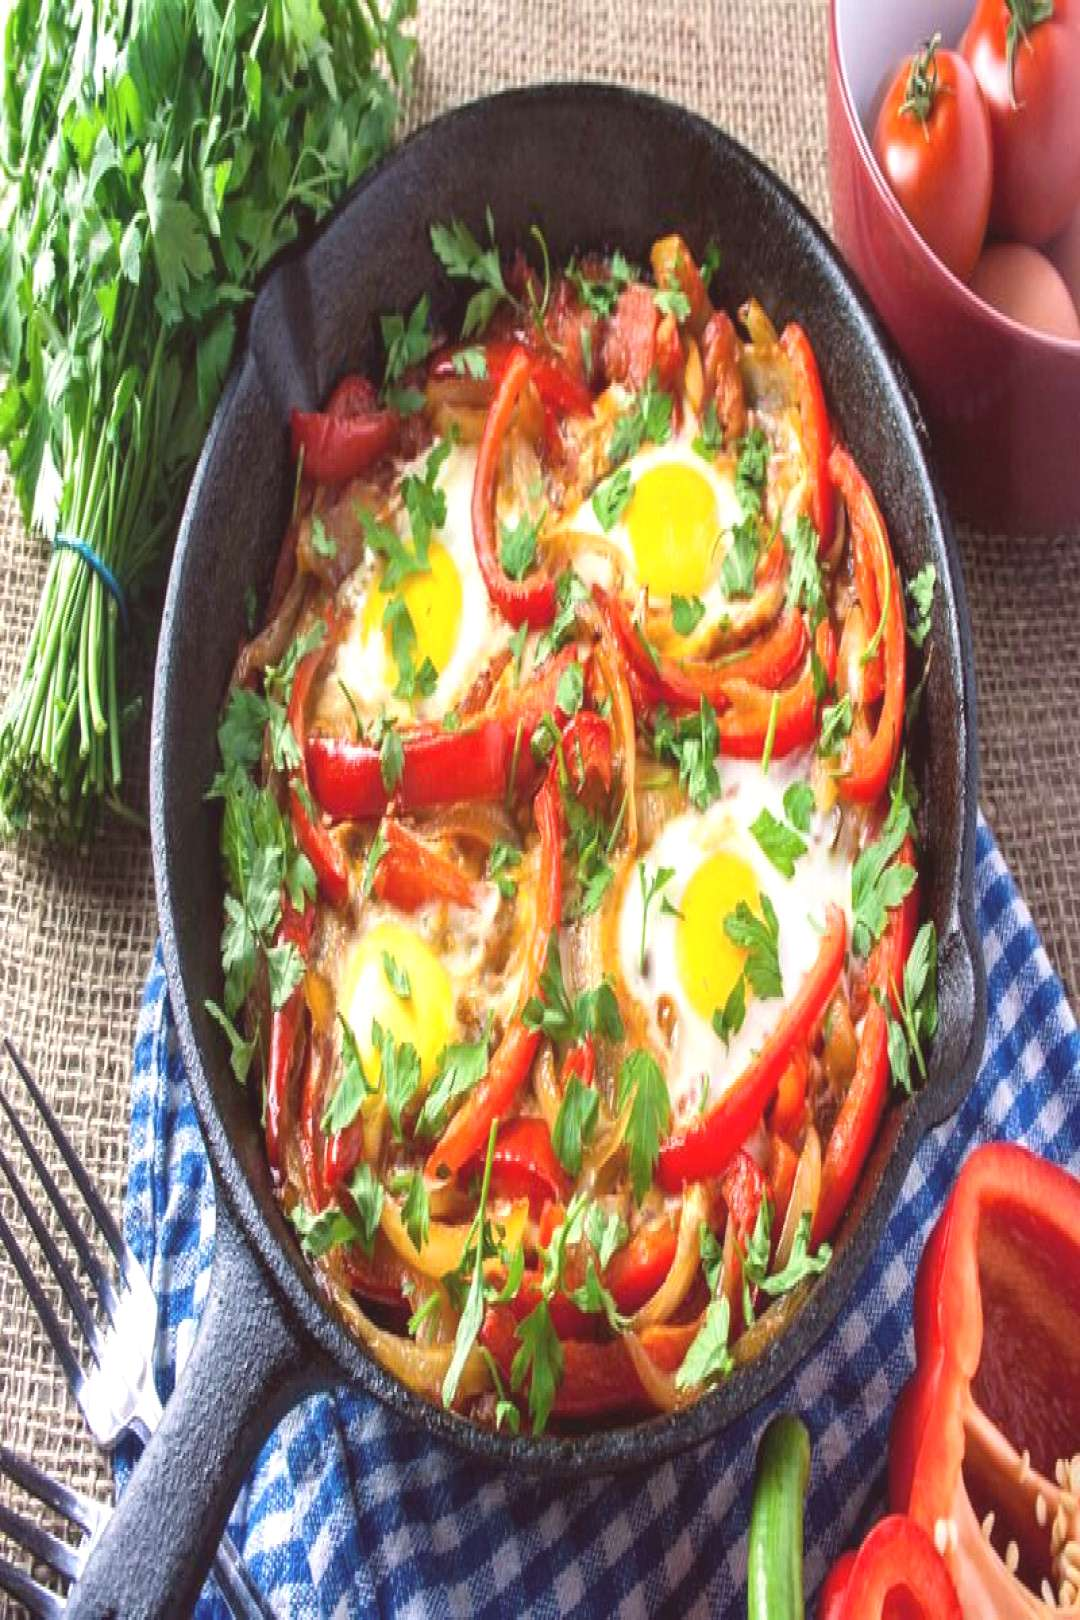 Baked Eggs Skillet With Red Peppers And Onions » The Candida Diet Baked Eggs Skillet With Red Pepp